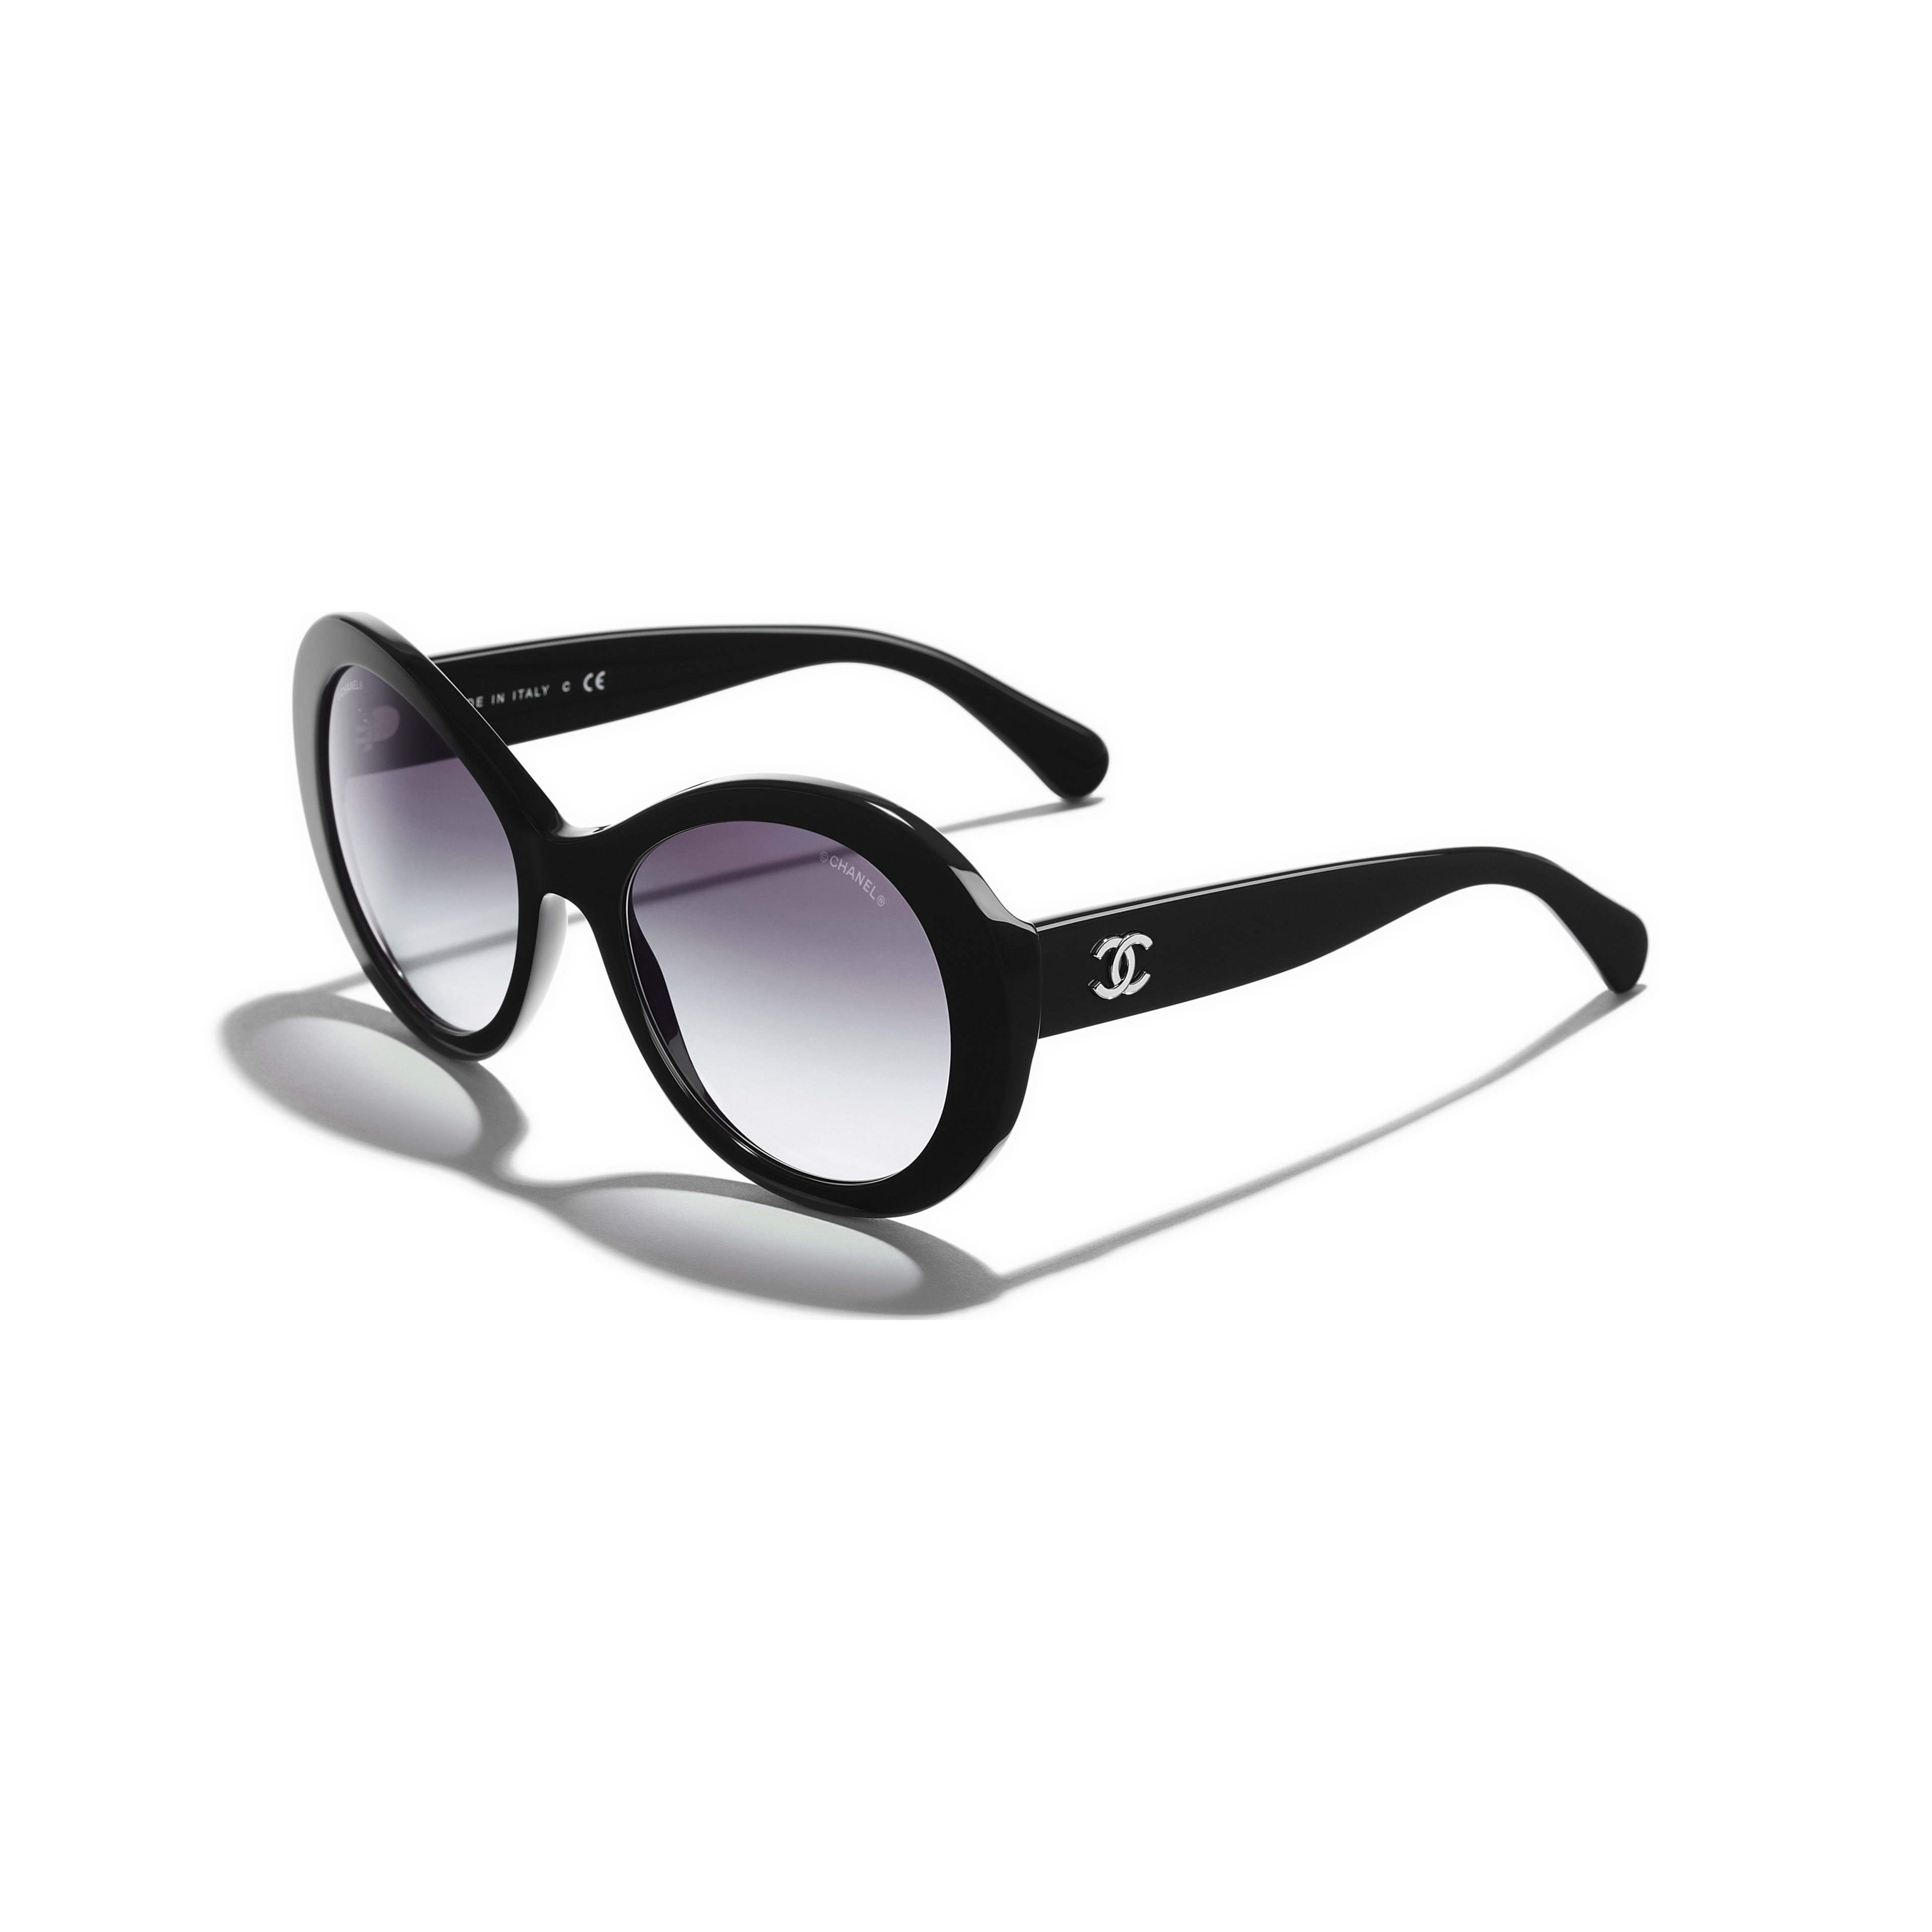 Oval Sunglasses Acetate Black -                                                               view 1 - see full sized version